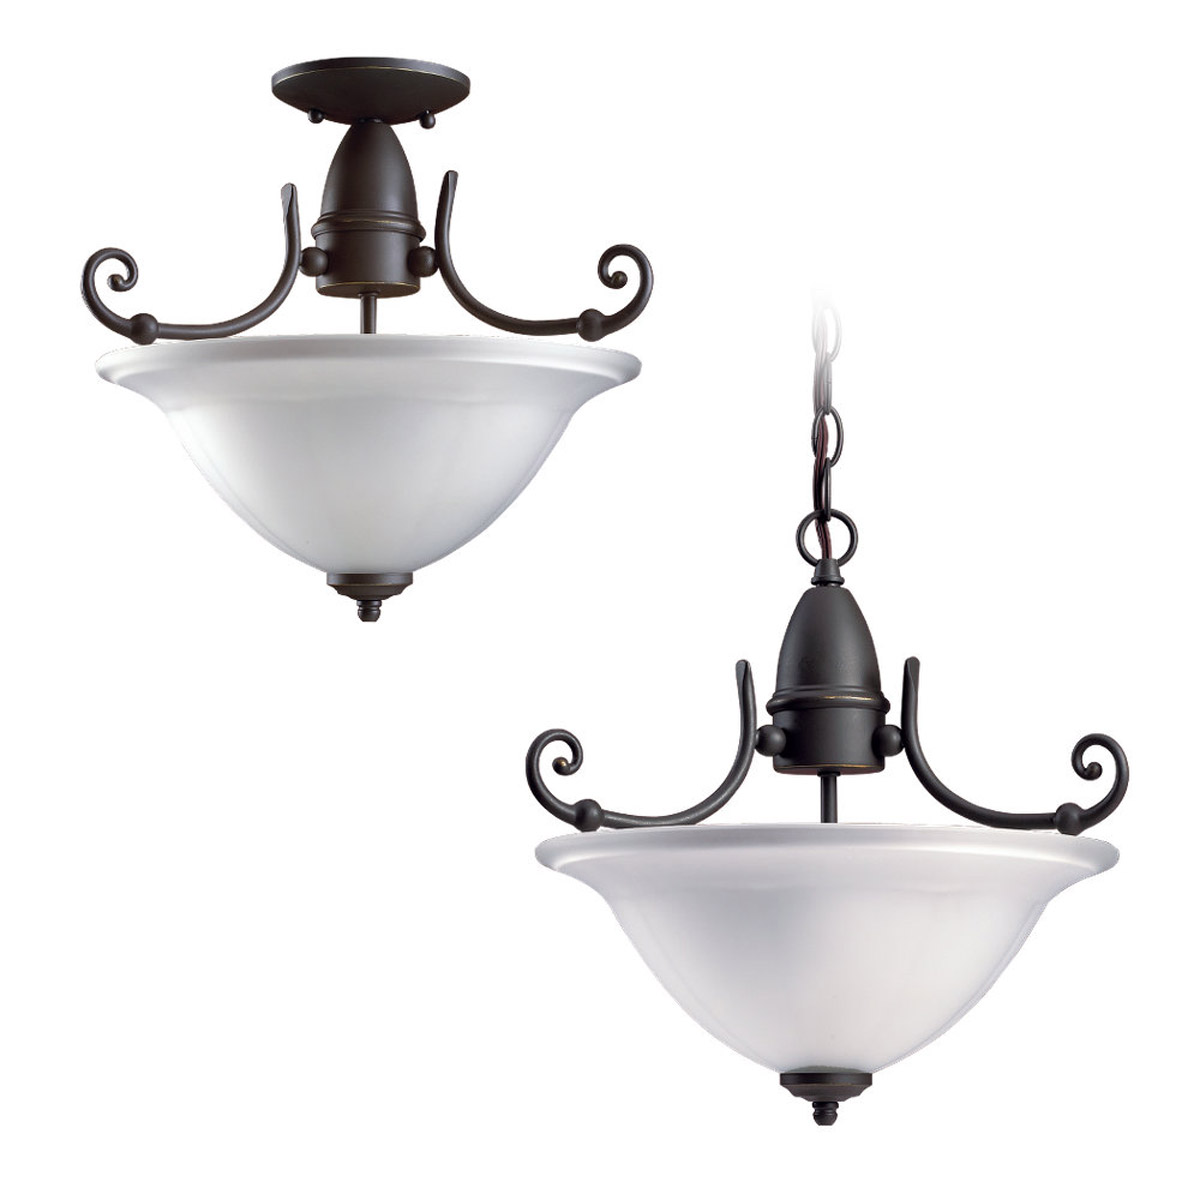 Sea Gull Lighting Canterbury 2 Light Pendant Convertible in Antique Bronze 51050-71 photo